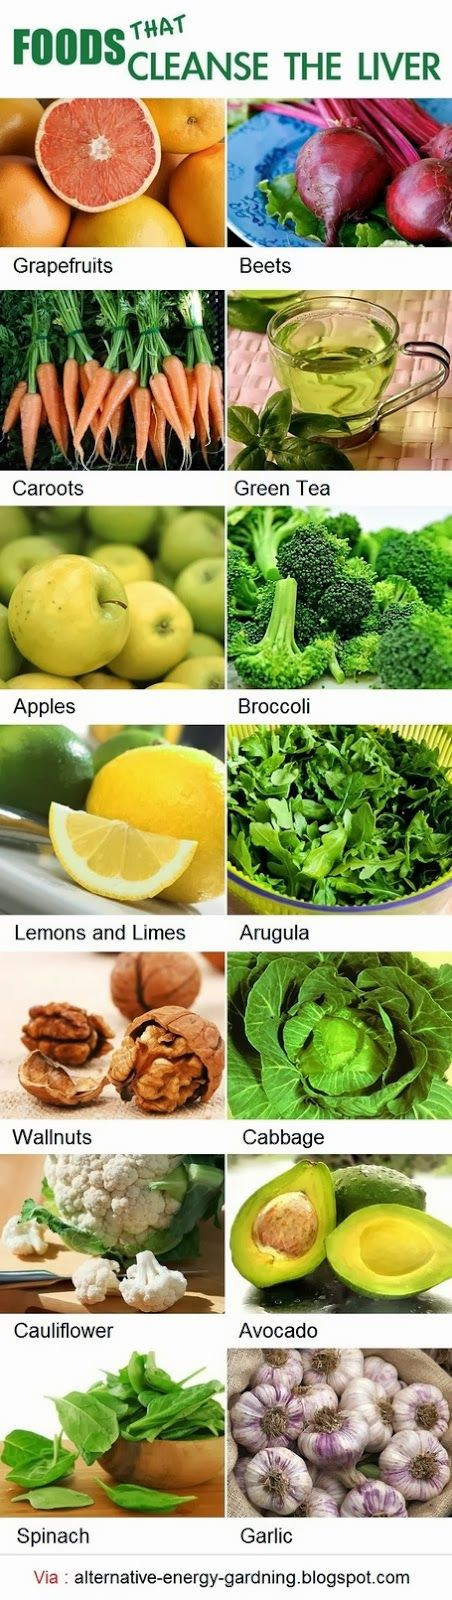 Foods that cleanse your liver.